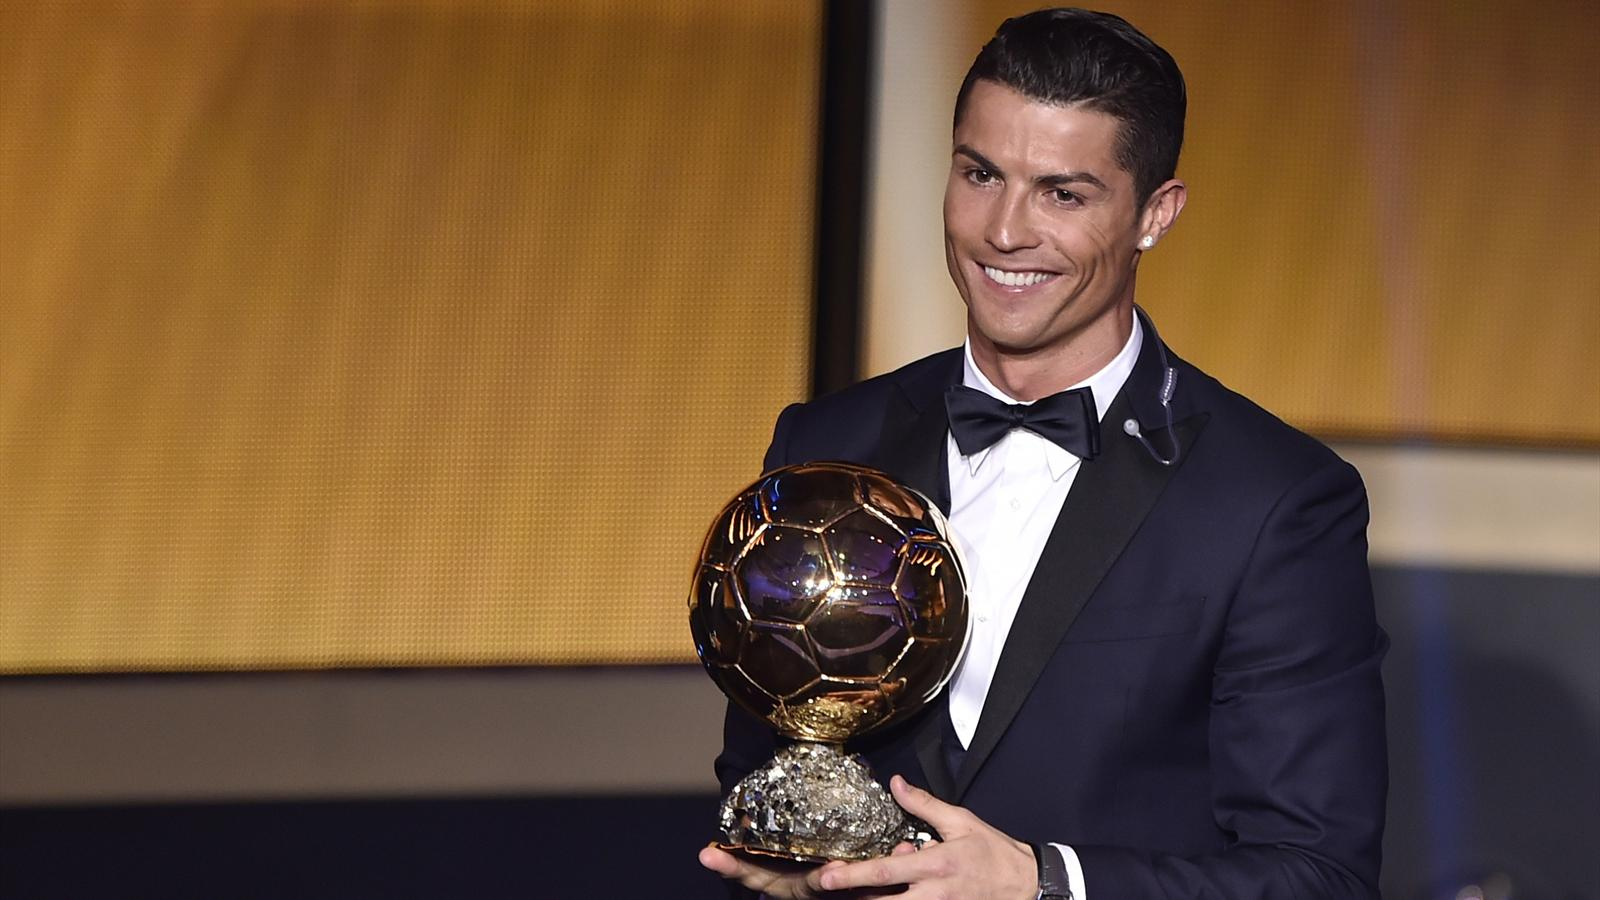 Ronaldo reçoit son 3e Ballon d'Or